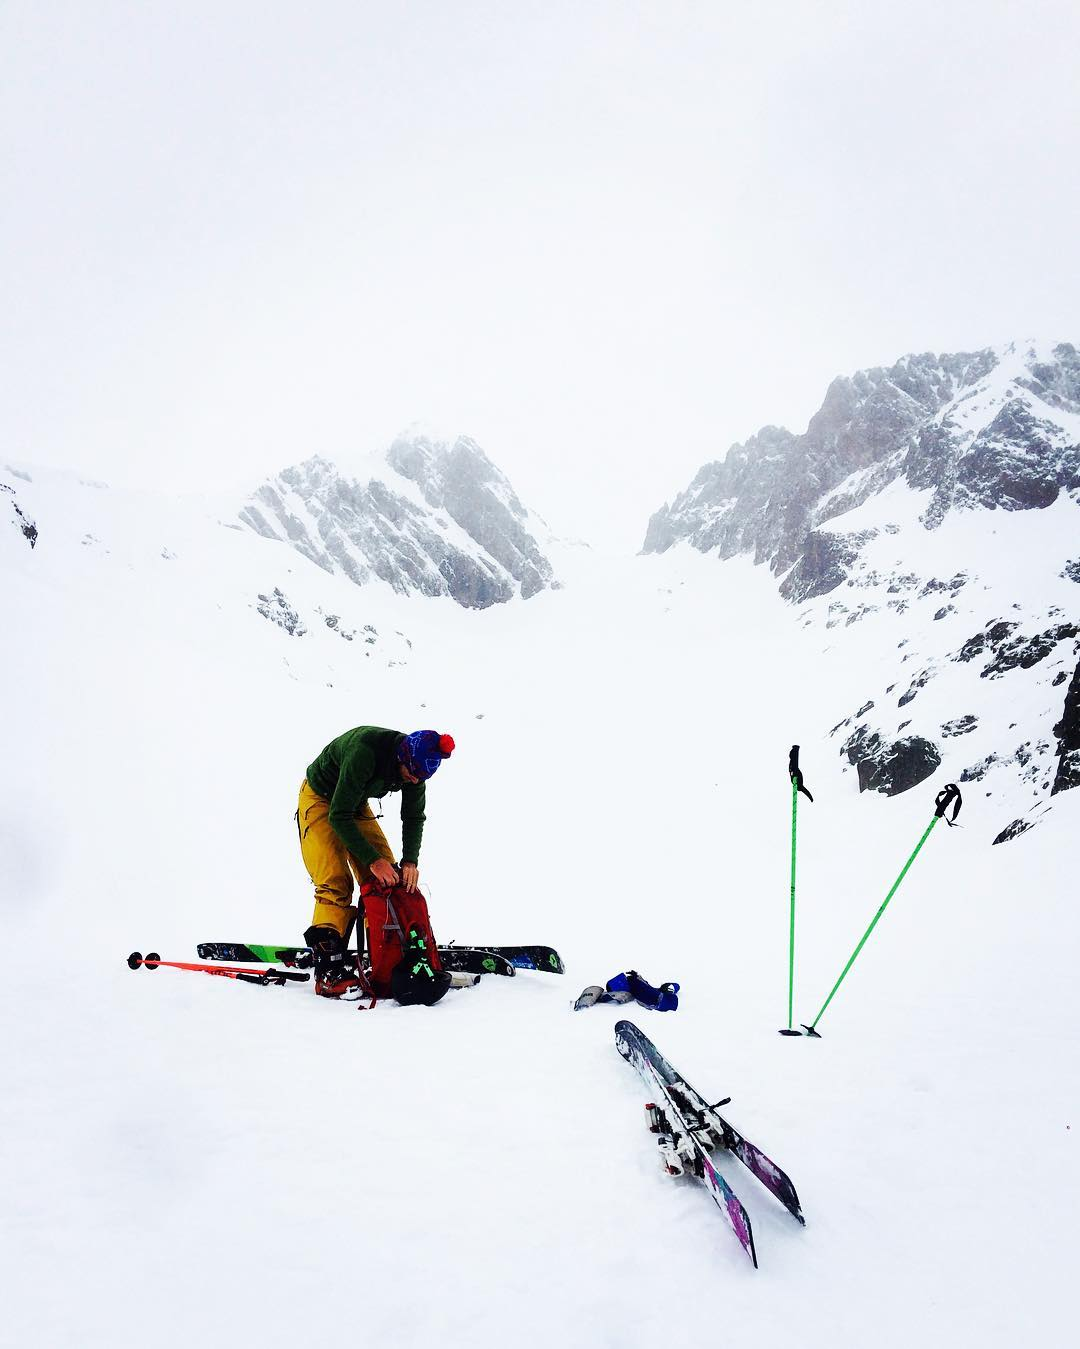 The immense white // two hours climbing up, 15 min down. Priceless skiing at #chamonix . #eurotrip #mafiabags